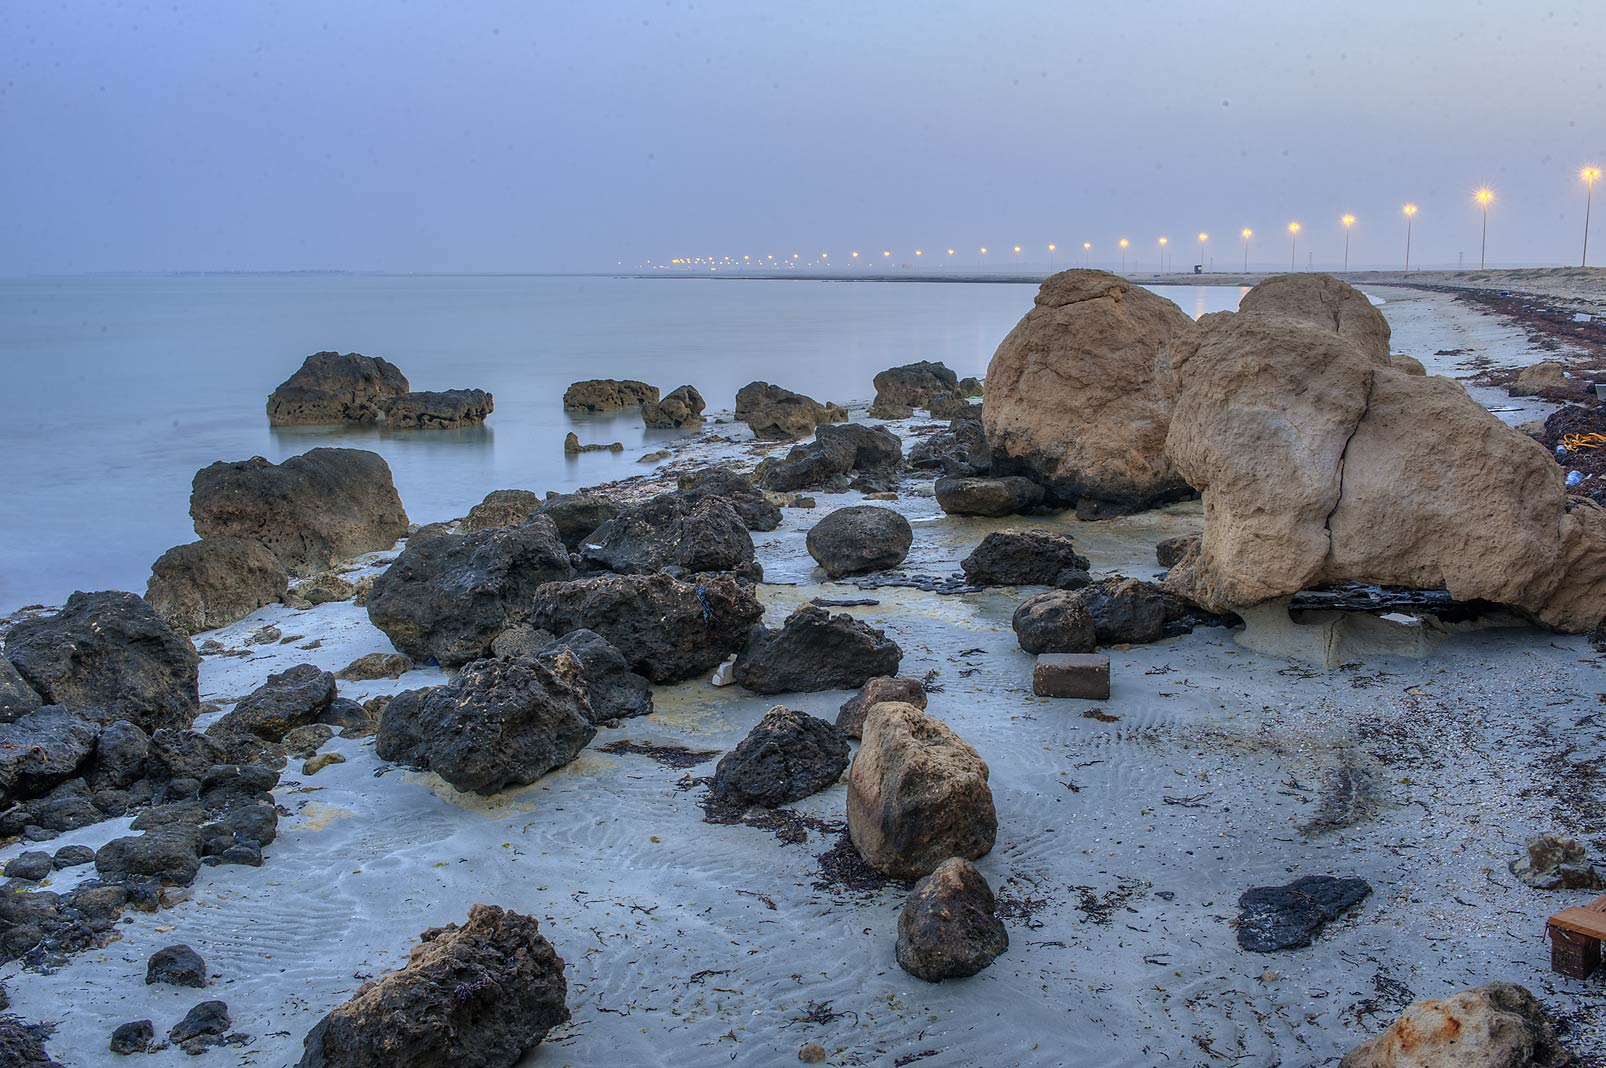 Limestone rocks on a beach in Abu Samra, near Salwa Rd.. Qatar